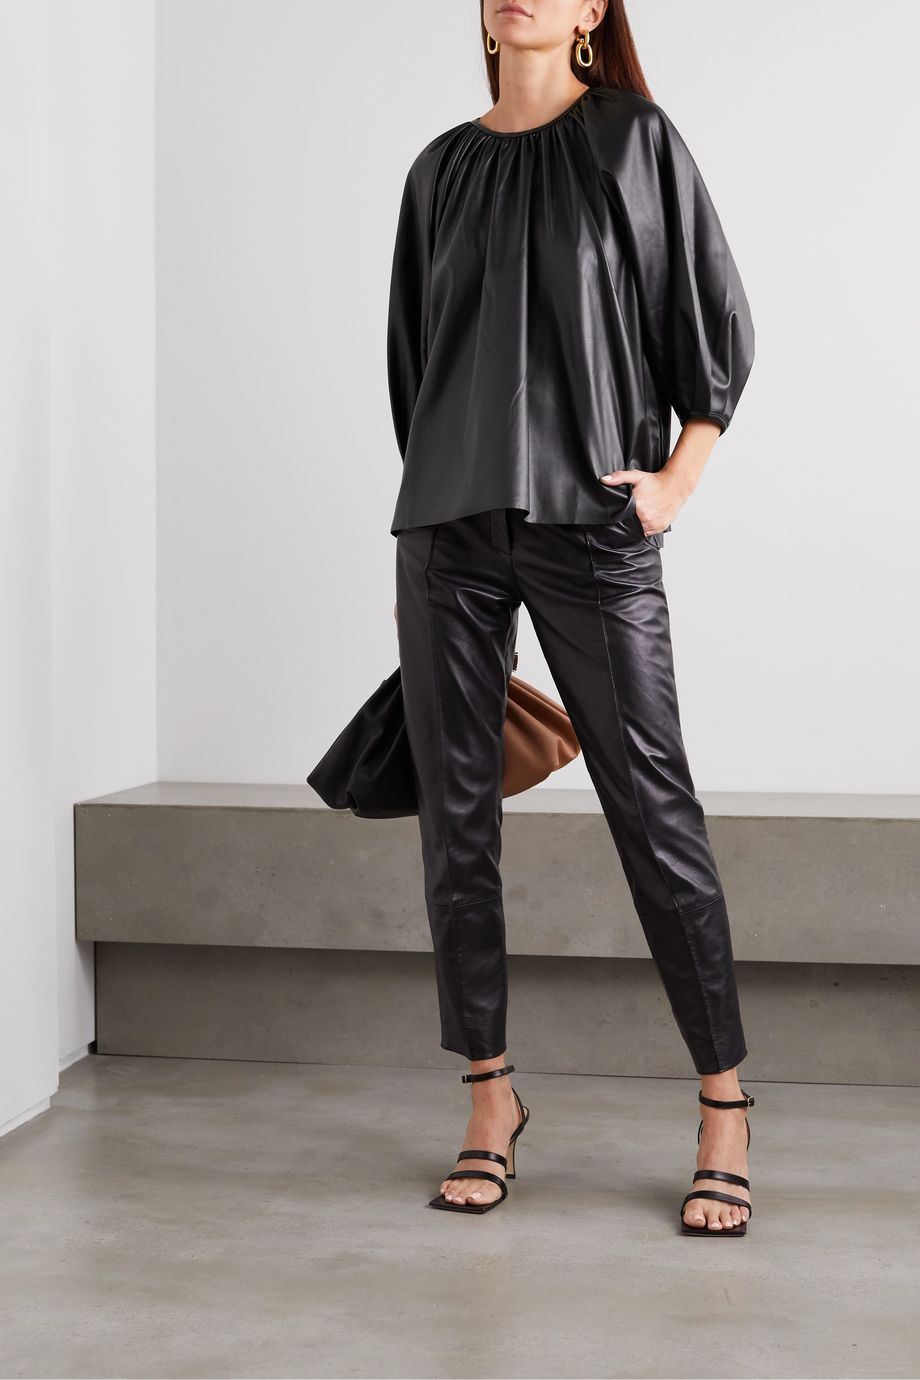 Frankie Shop Gathered faux leather top